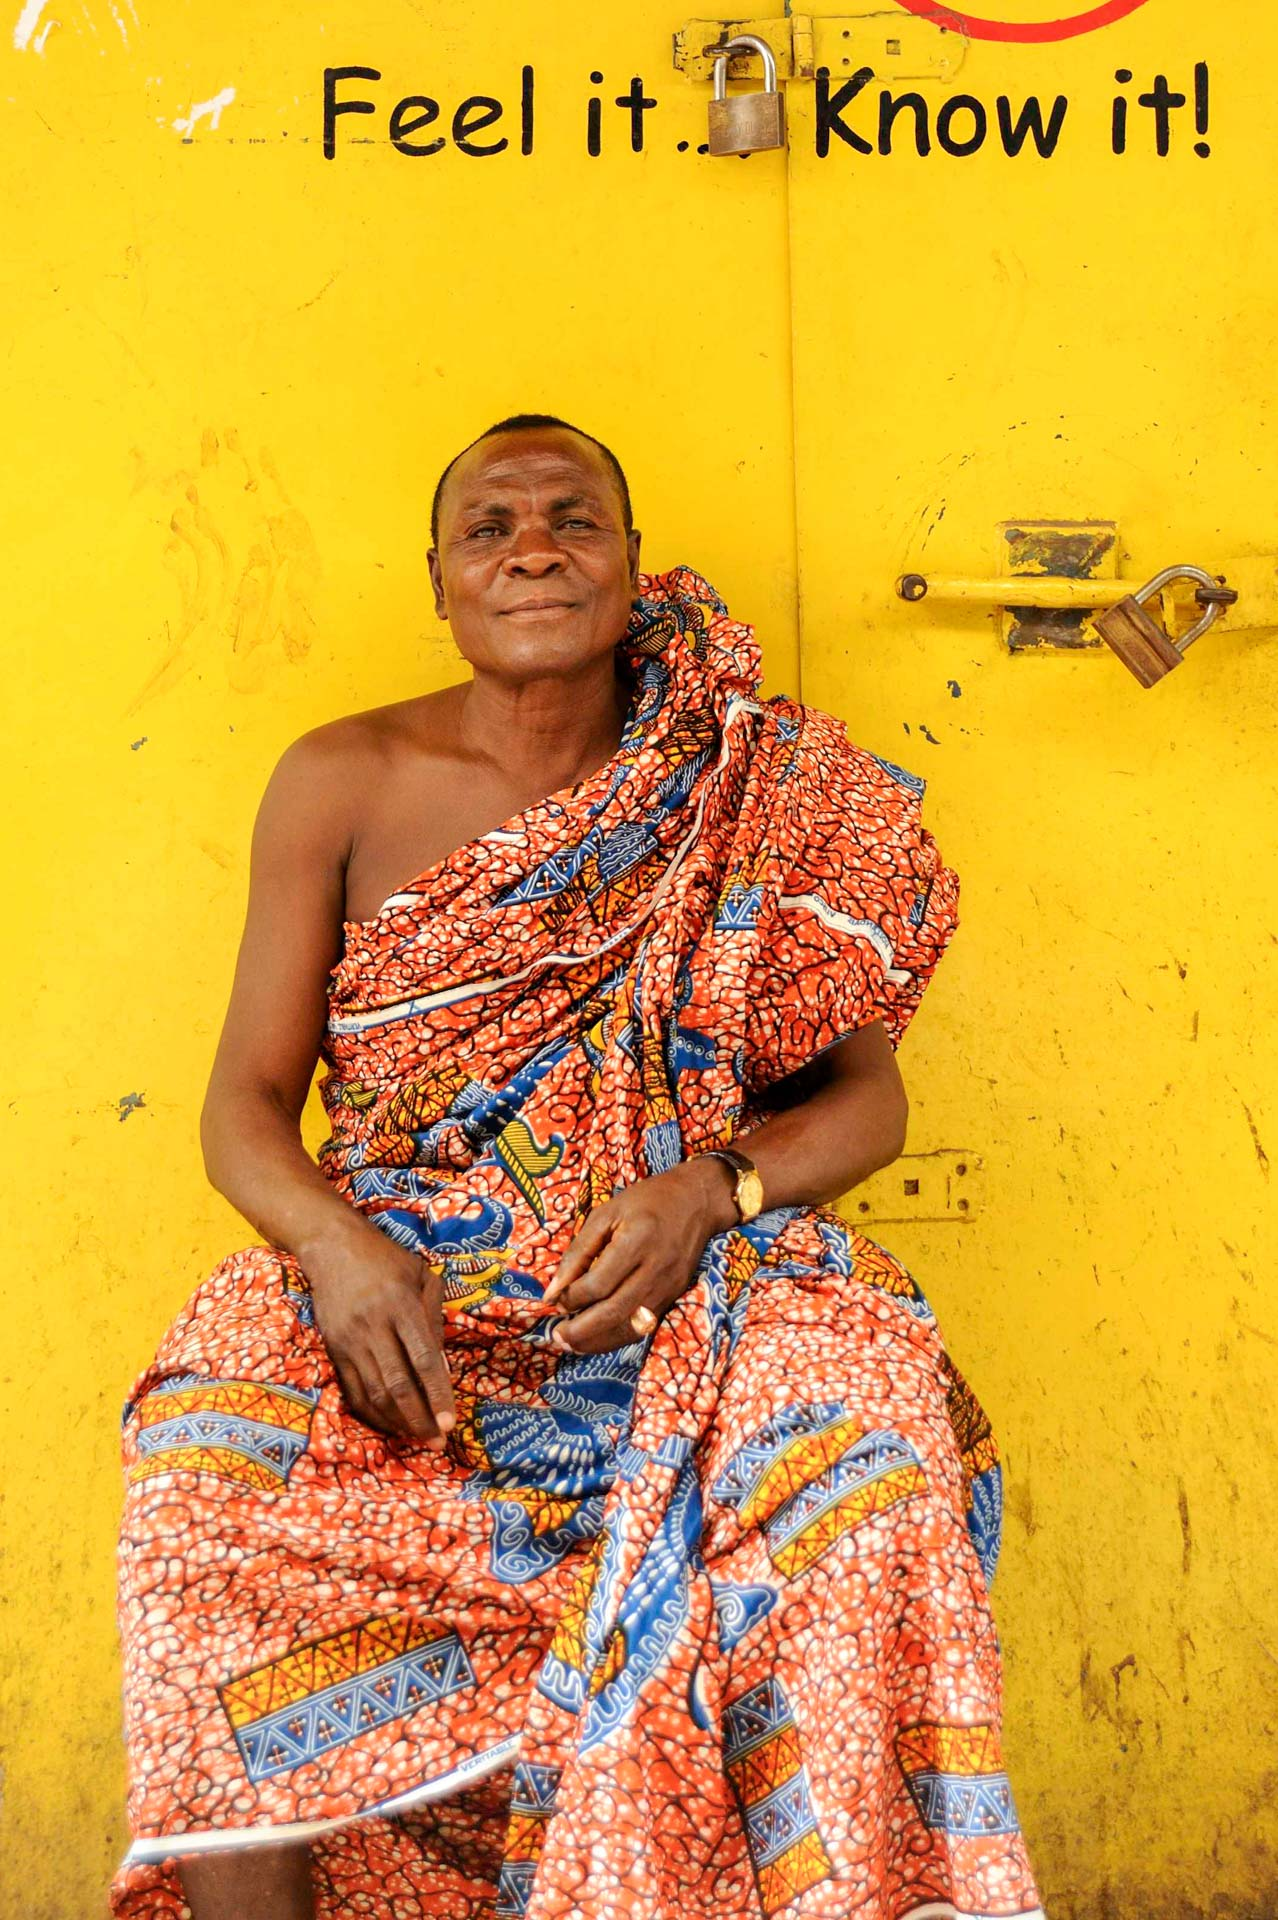 The African Monk